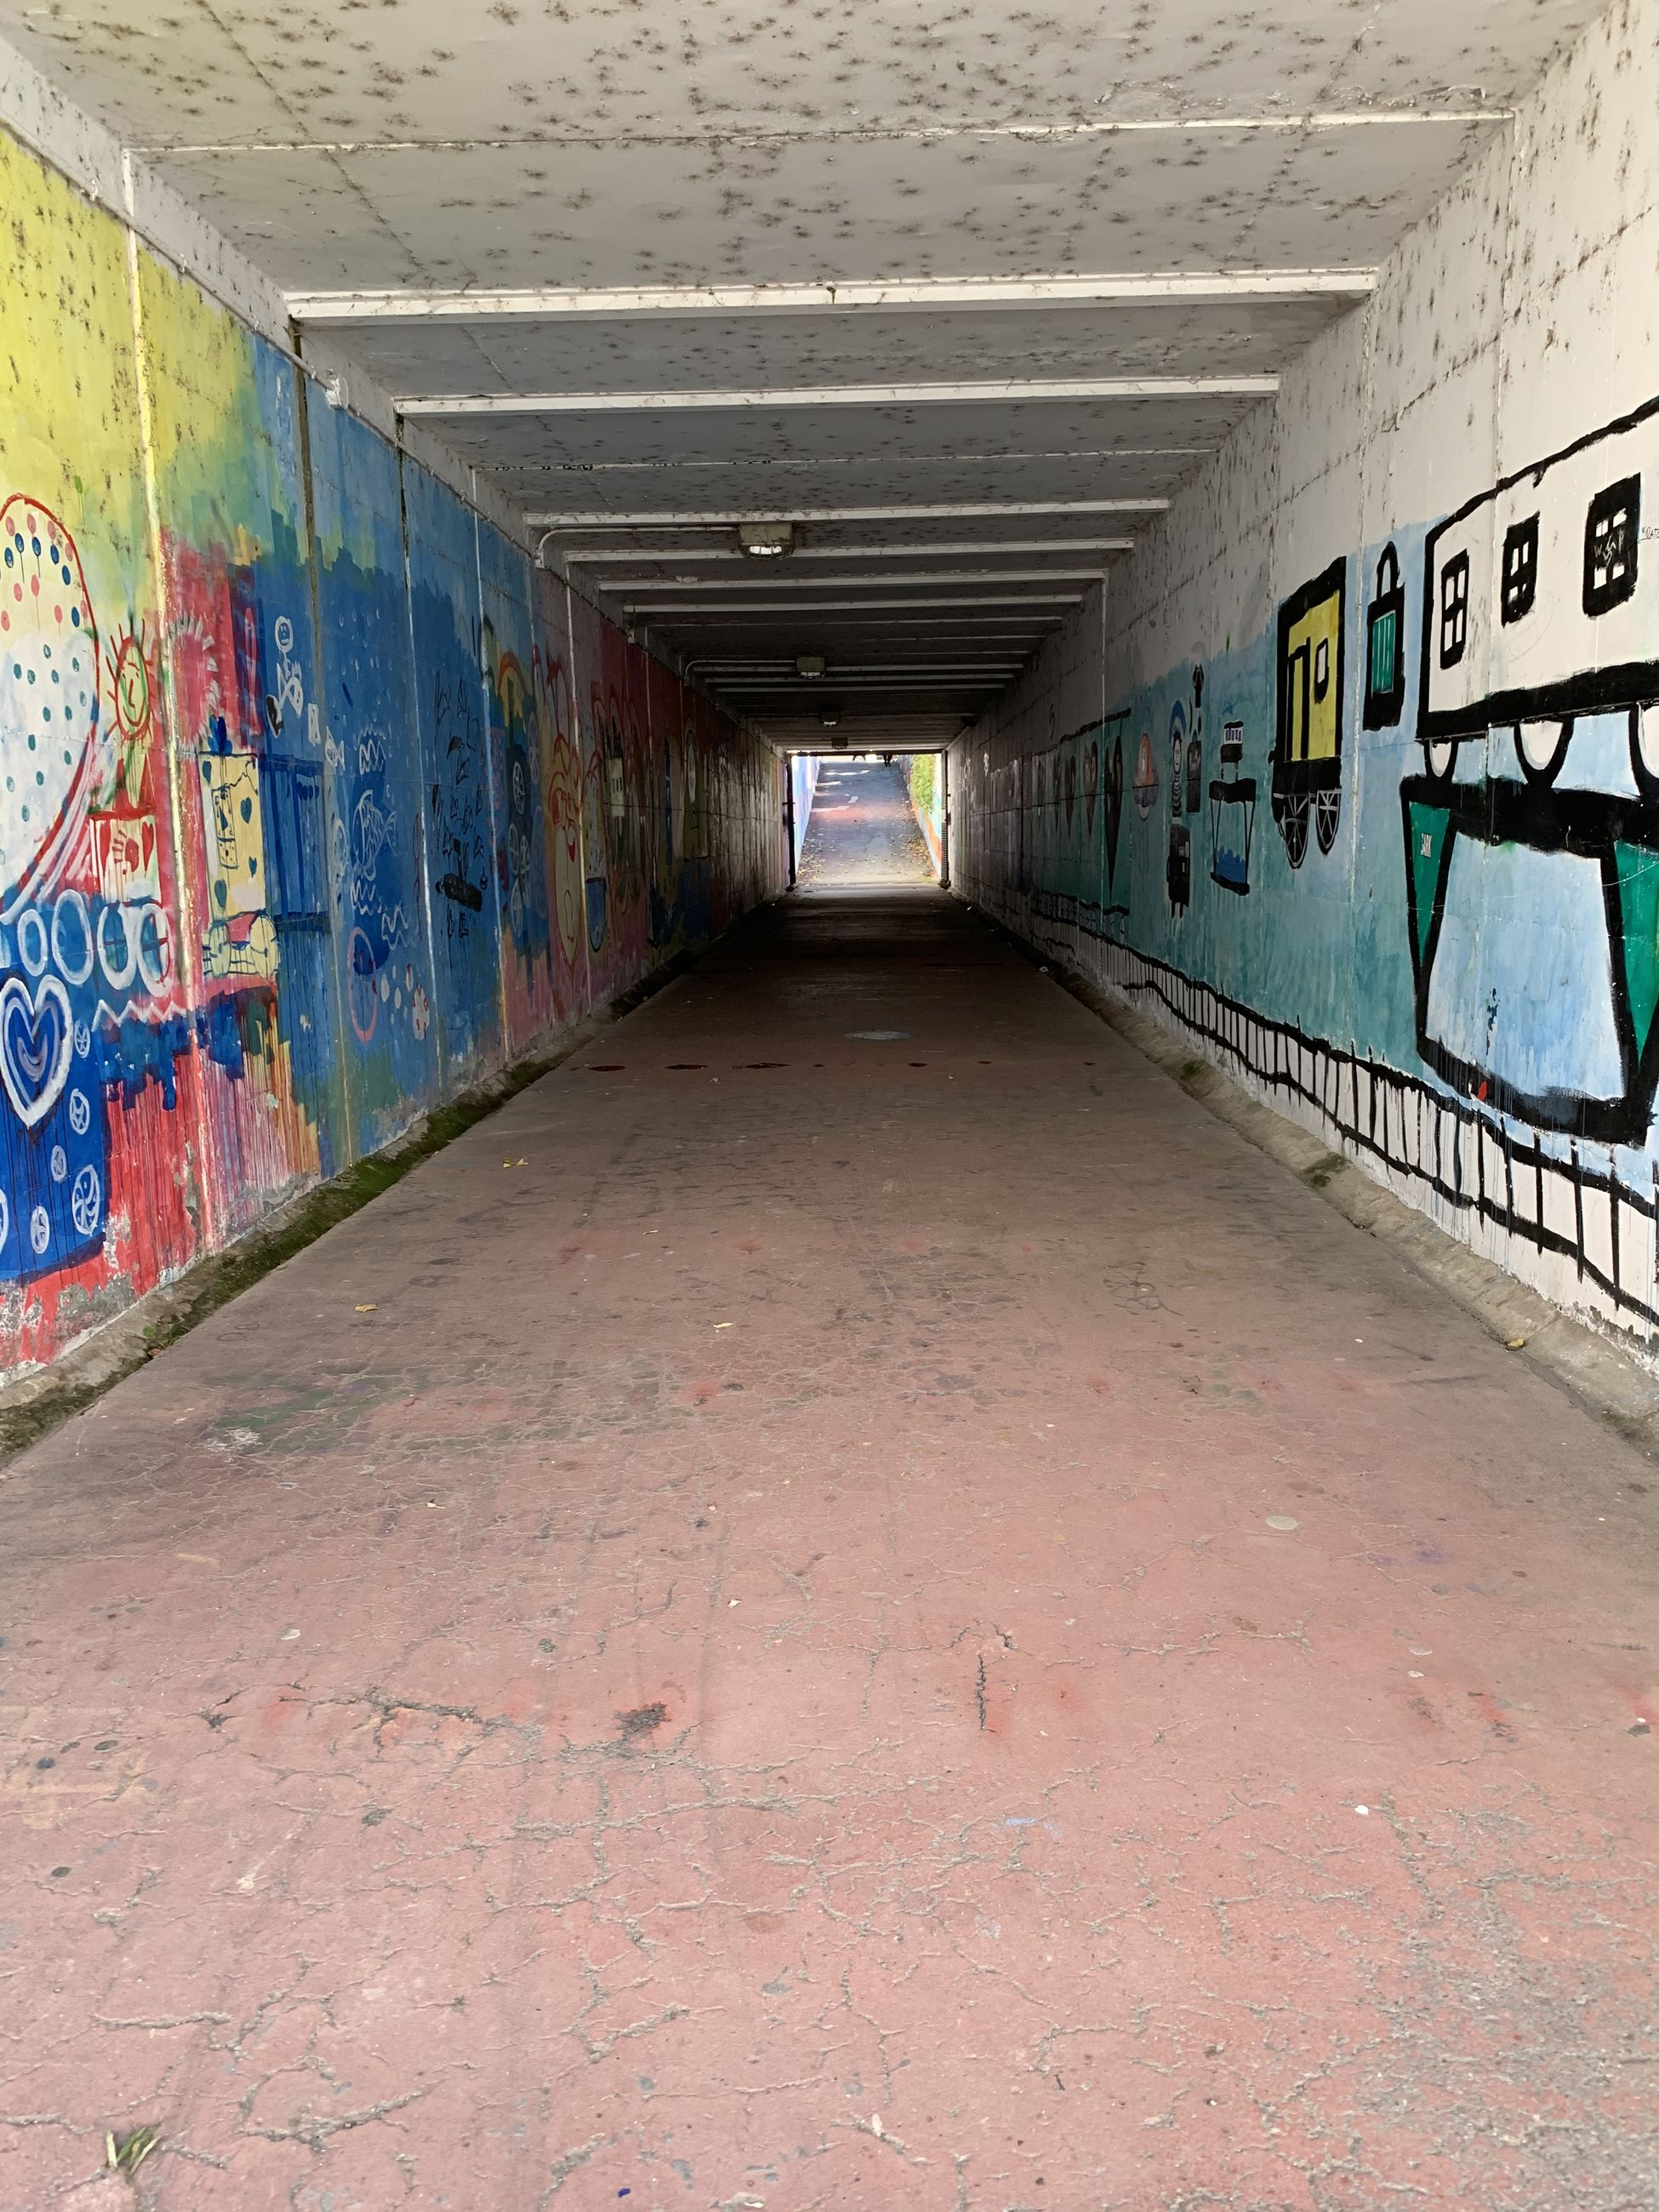 GRAFFITI ON WALL OF TUNNEL